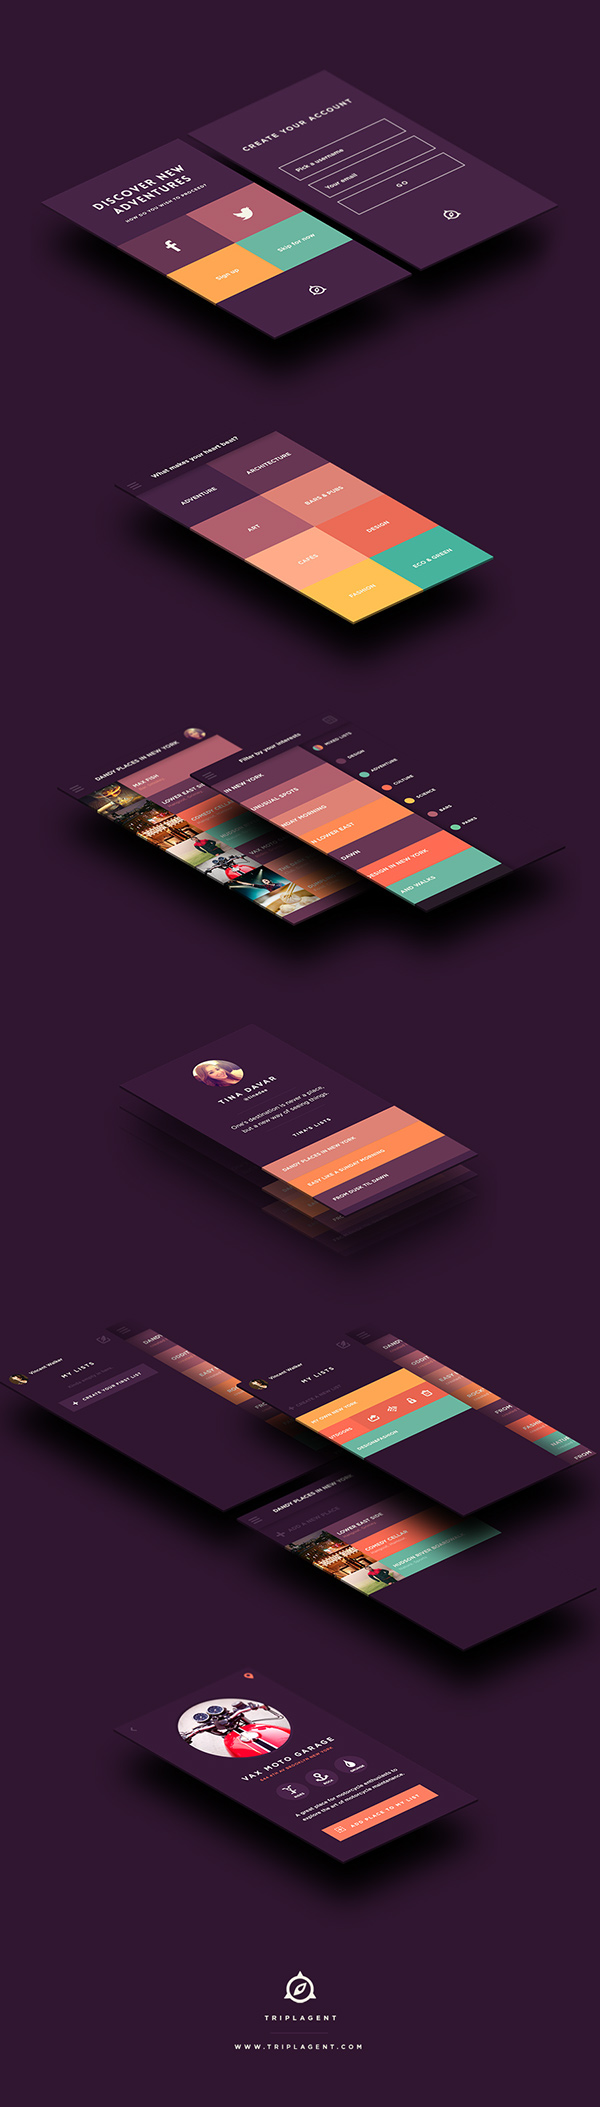 flat ui  mobile app colorful Travel brand identity user experience